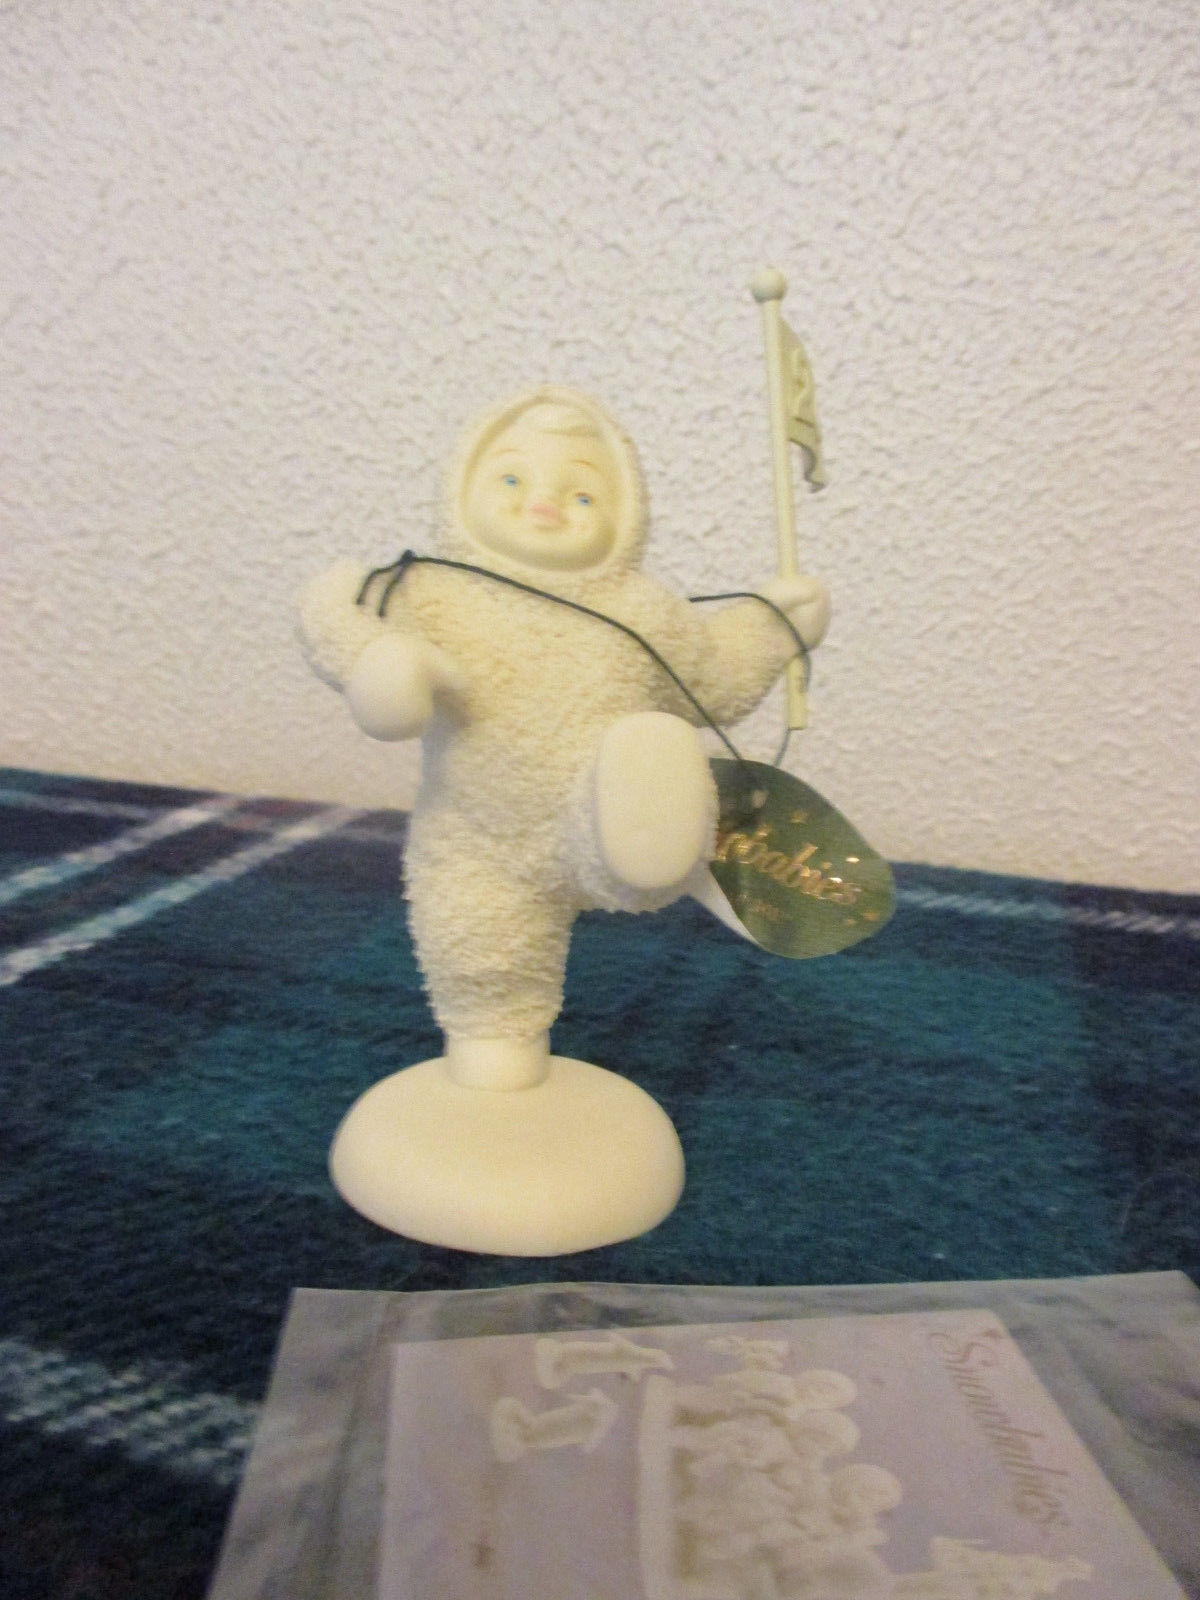 Department 56 Snowbabies Follow Me Figurine 2000 - $5.99